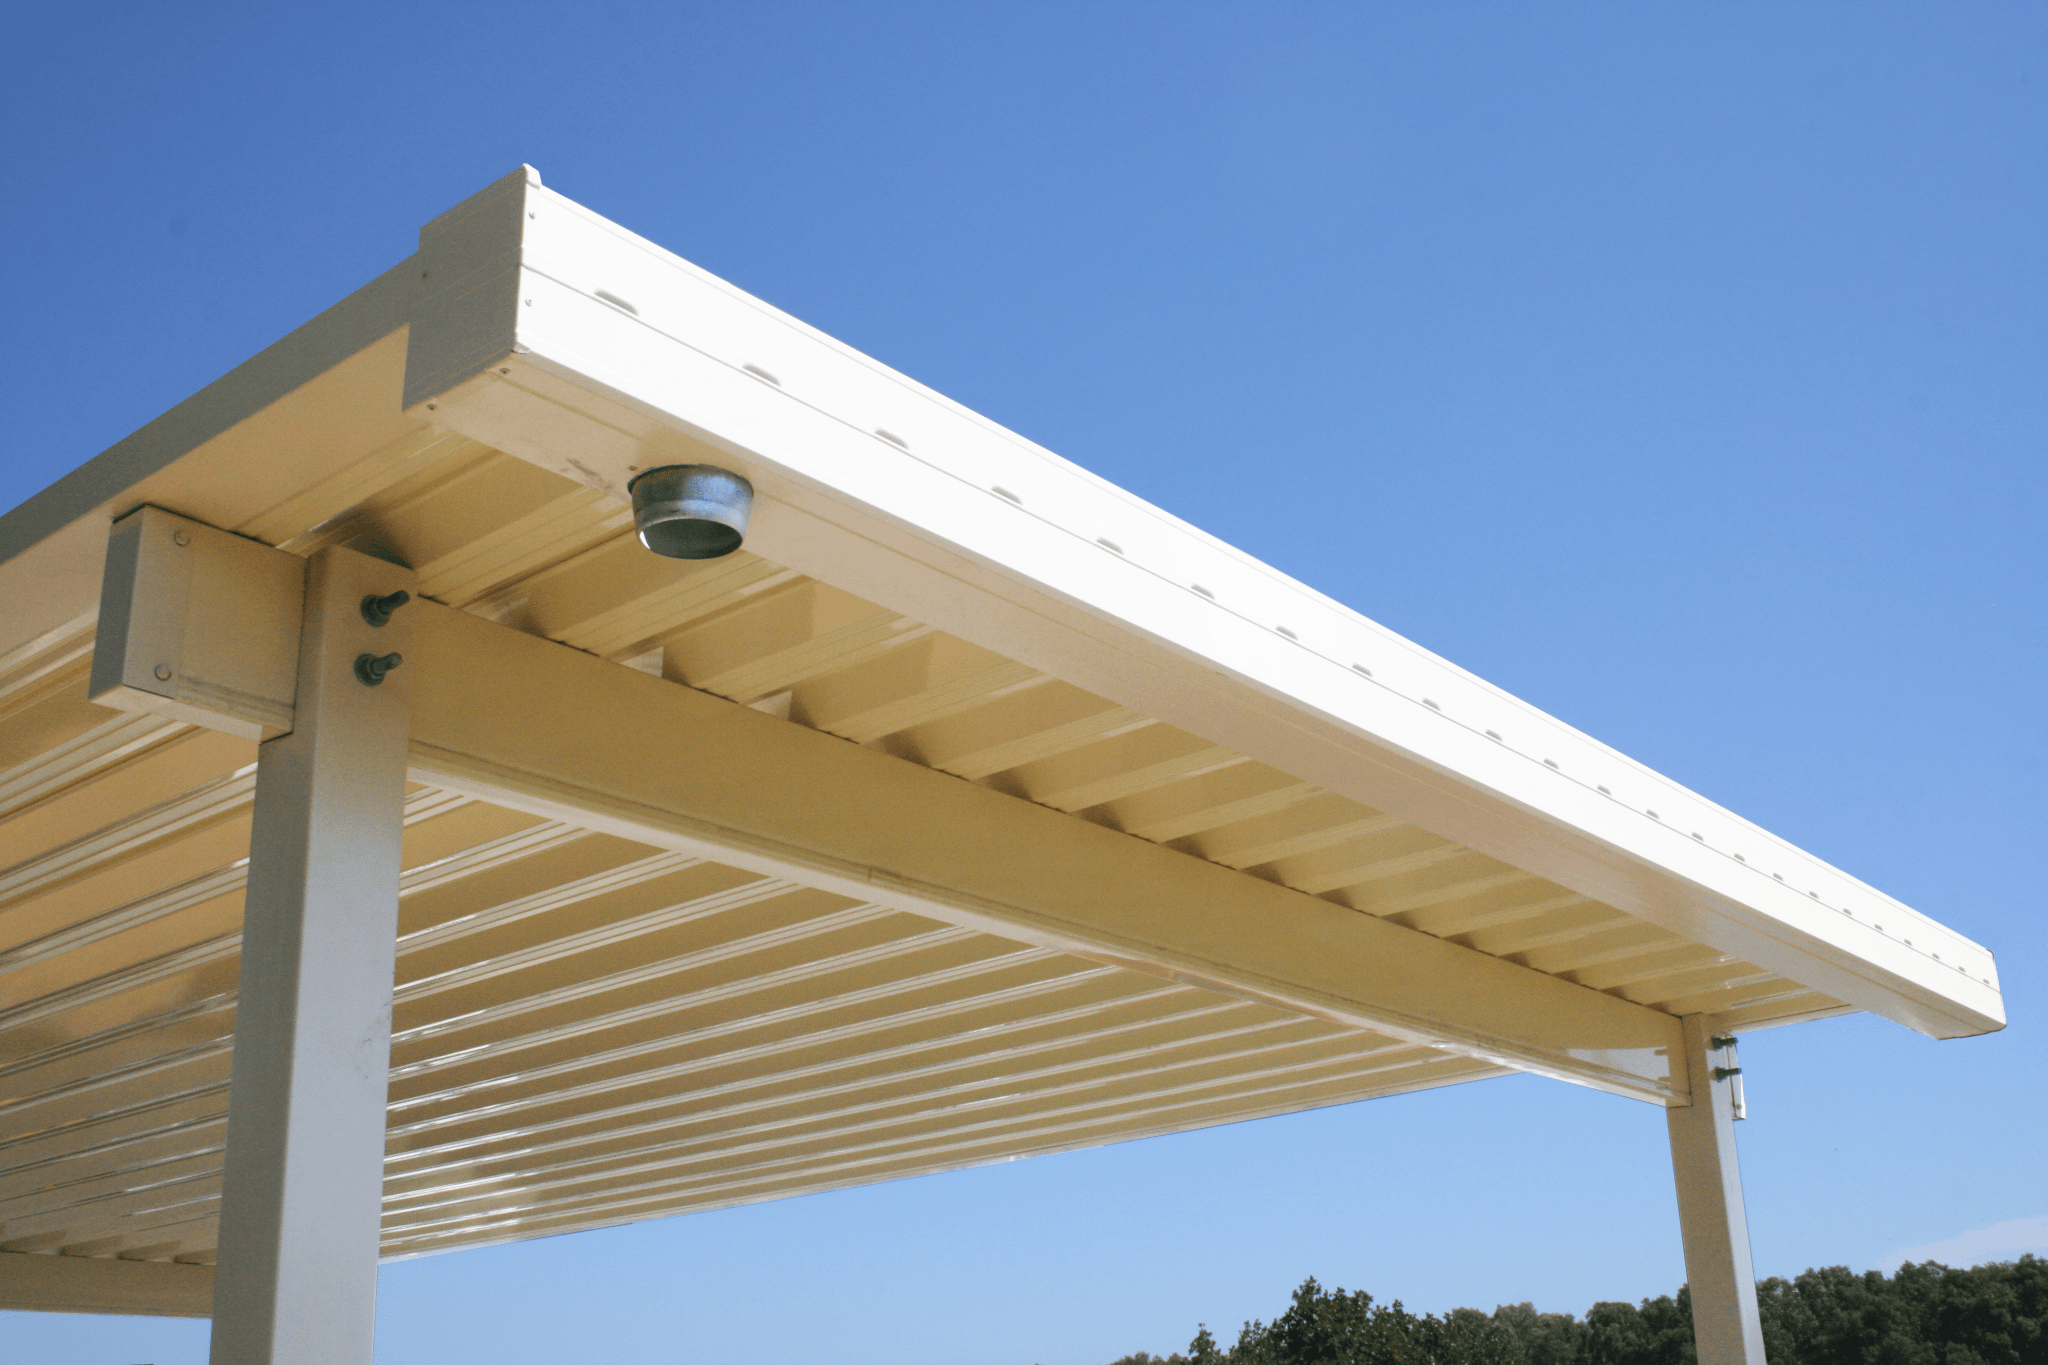 Spanmax W Carport providing Australia's longest unsupported spans